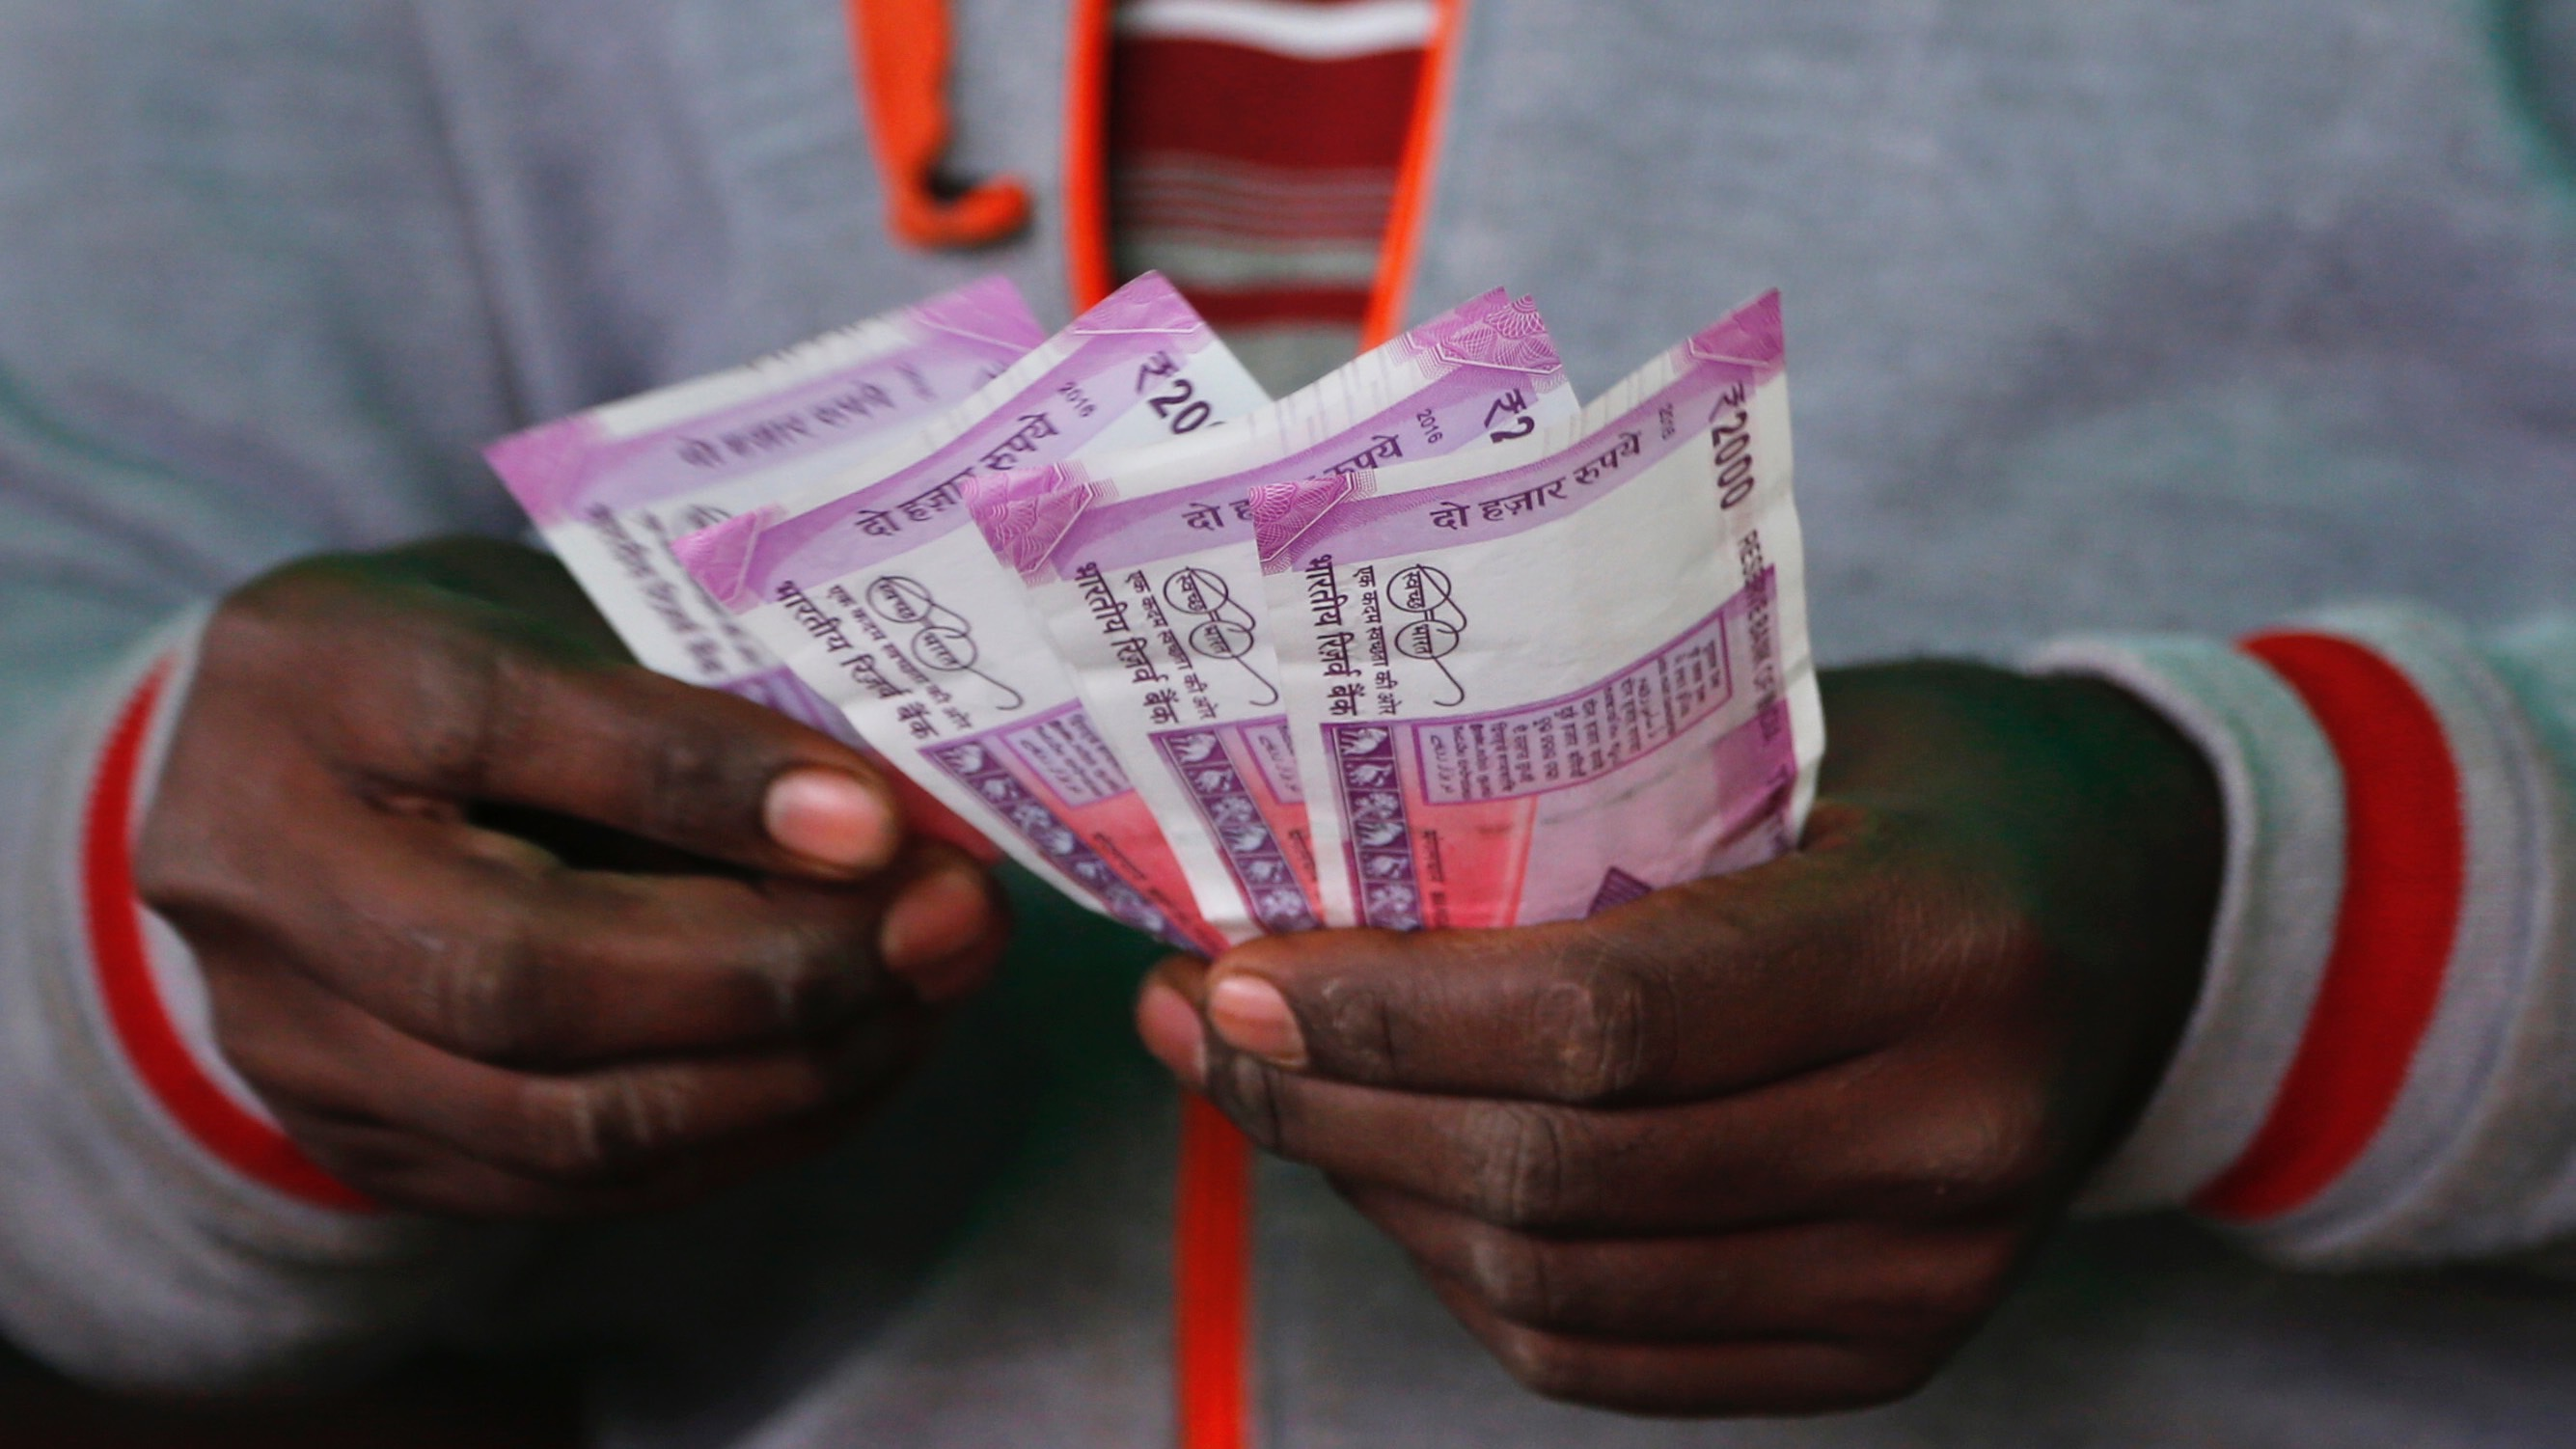 A trader counts new 2,000-rupee notes at a wholesale vegetable market in Bangalore, India, Friday, Dec. 30, 2016. India yanked most of its currency bills from circulation without warning, delivering a jolt to the country's high-performing economy and leaving countless citizens scrambling for cash. Still, as Friday's deadline for depositing old 500- and 1,000-rupee notes draws to a close, Prime Minister Narendra Modi's government has called the demonetization drive a great success in drawing out tax dodgers and eliminating graft. (AP Photo/Aijaz Rahi)